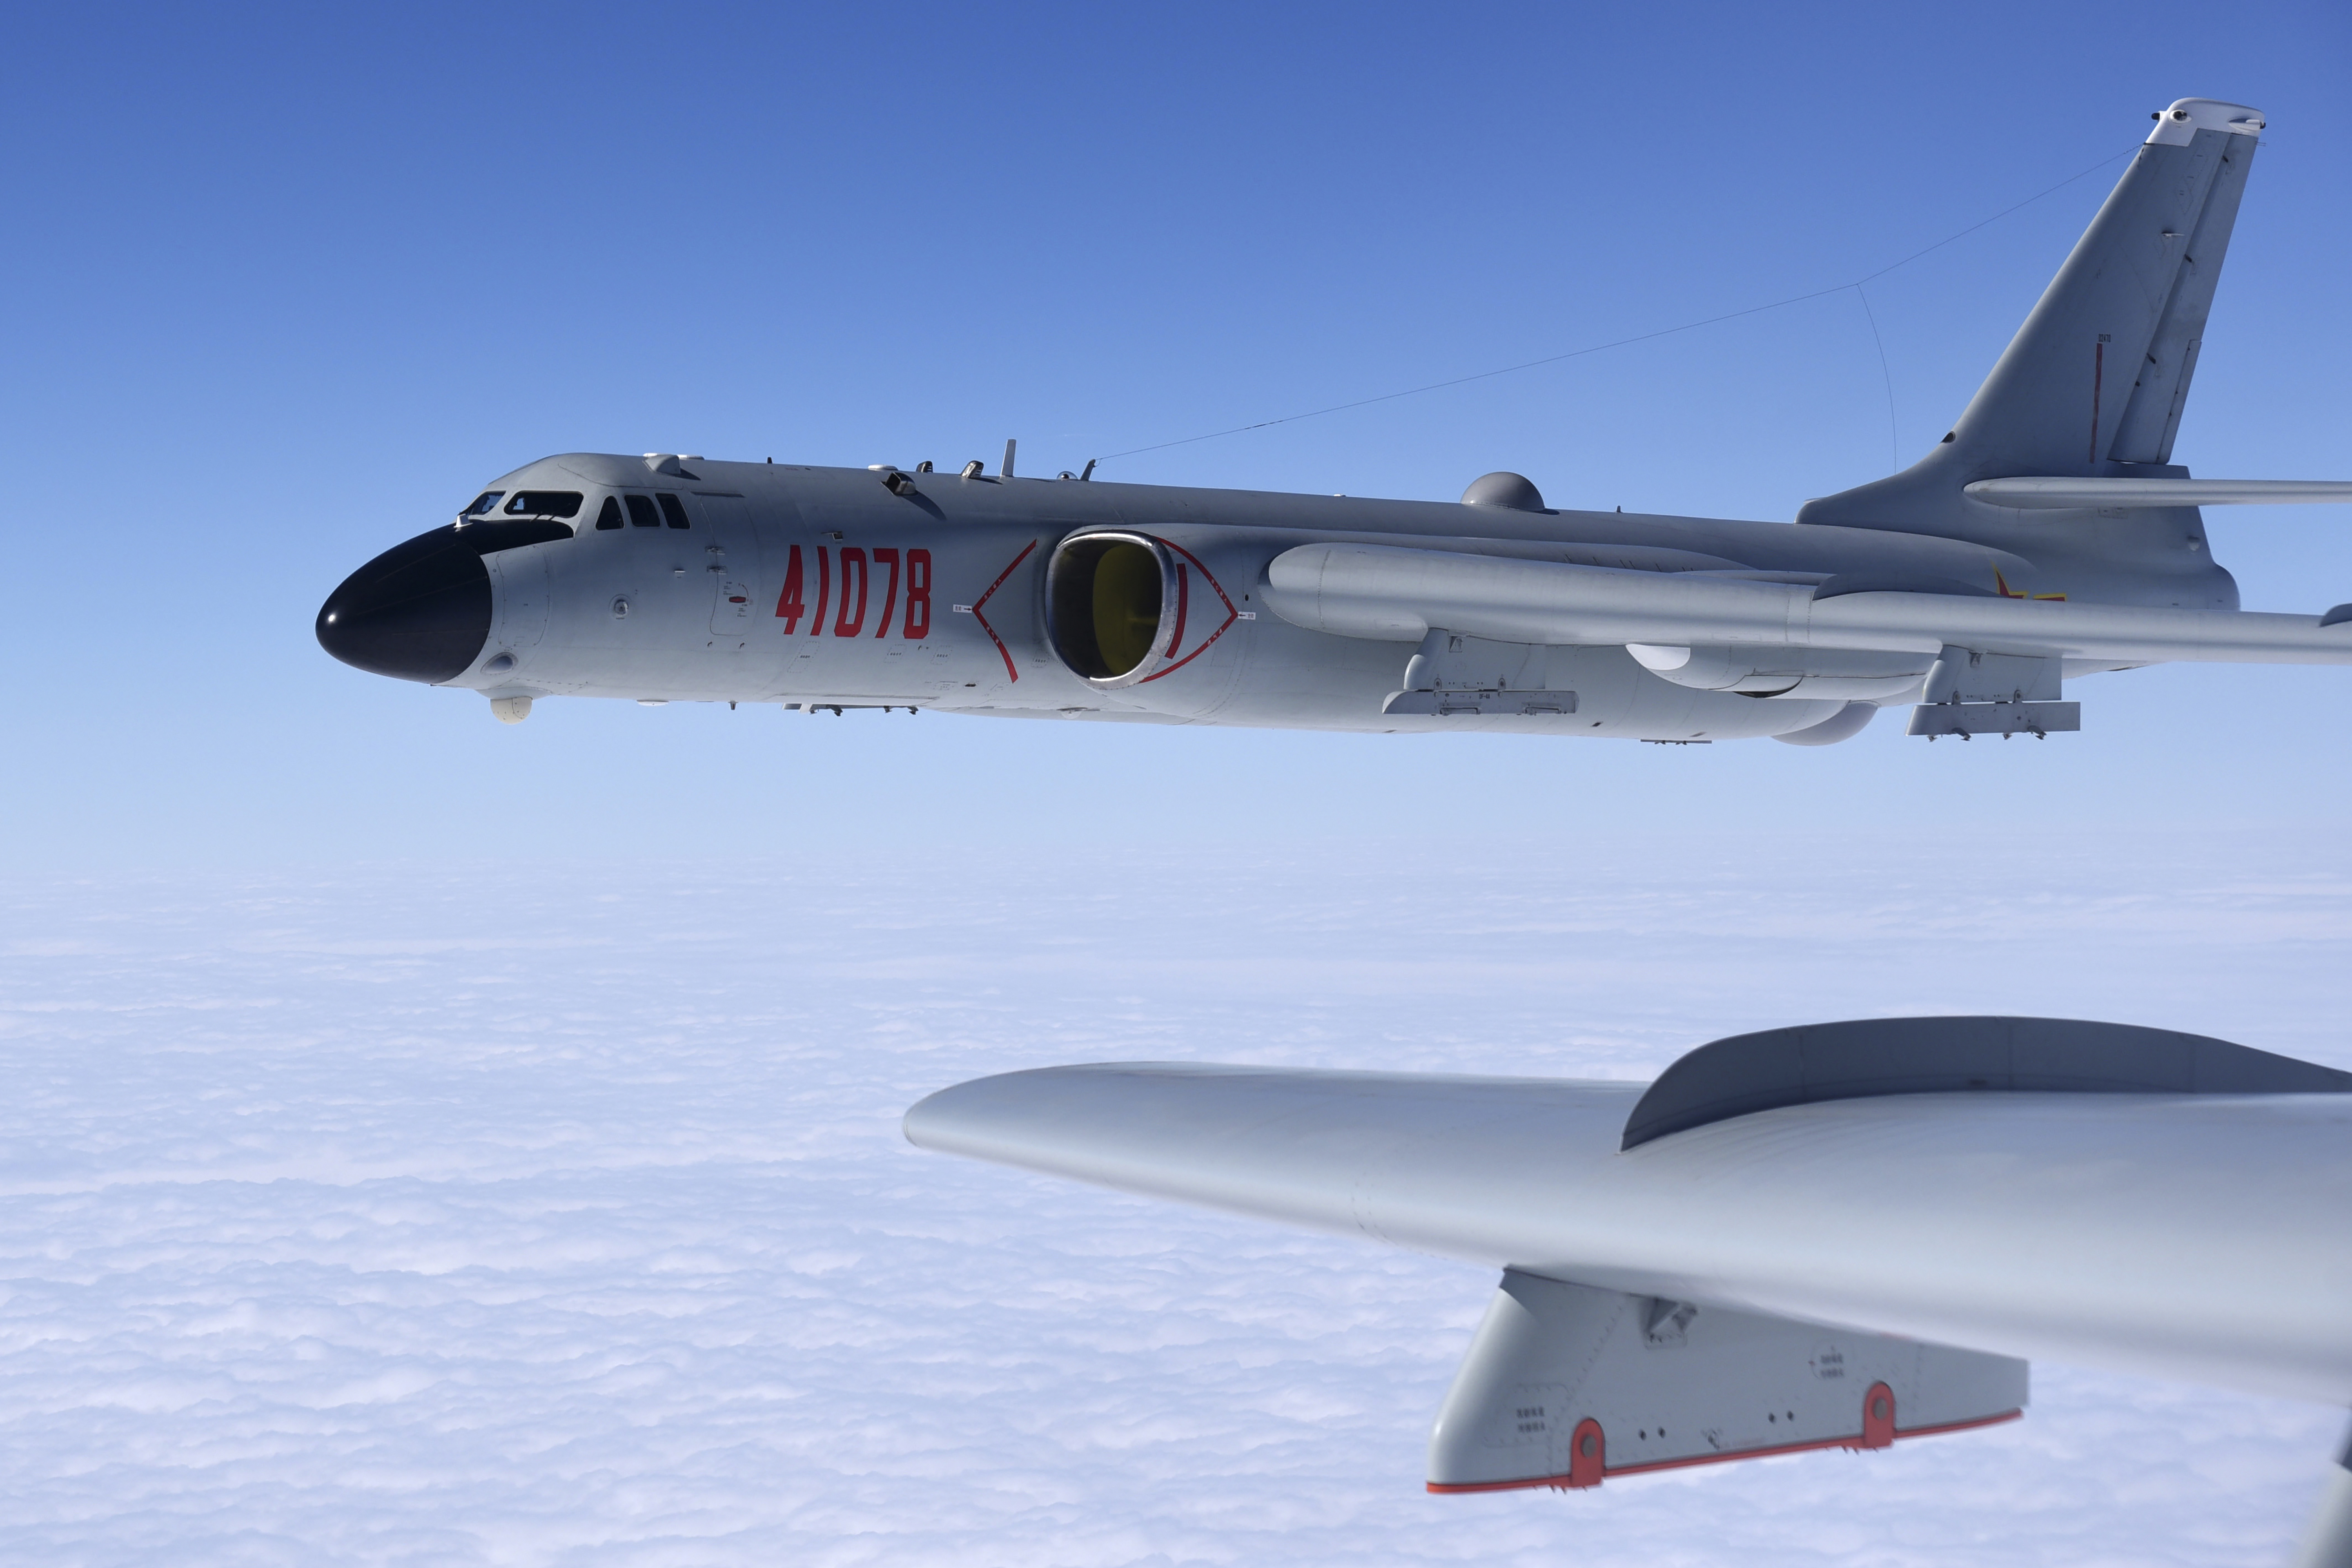 In this Nov. 23, 2017, photo released by Xinhua News Agency, a Chinese military H-6K bomber is seen conducting training exercises, as the People's Liberation Army (PLA) air force conducted a combat air patrol in the South China Sea. With record numbers of military flights near Taiwan over the last week, China has been stepping up its harassment of the island it claims as its own, showing an new intensity and sophistication as it asserts its territorial claims in the region.